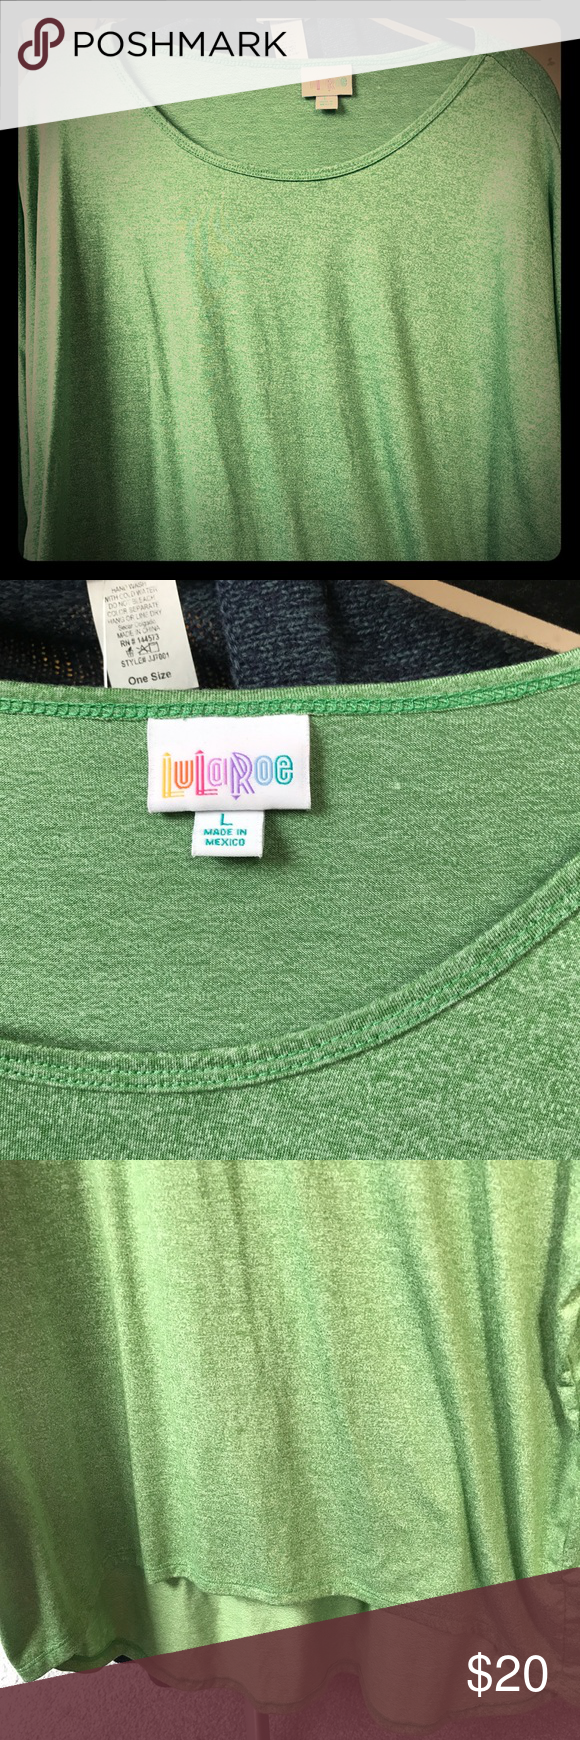 KELLY GREEN LULAROE LG IRMA SOFT PERFECT COLOR KELLY GREEN LULAROE LG IRMA SOFT PERFECT COLOR. SIZED VERY LOOSE. LEGGING MATERIAL. VERY DRAPY. TIE AT WAIST. LuLaRoe Tops Tunics